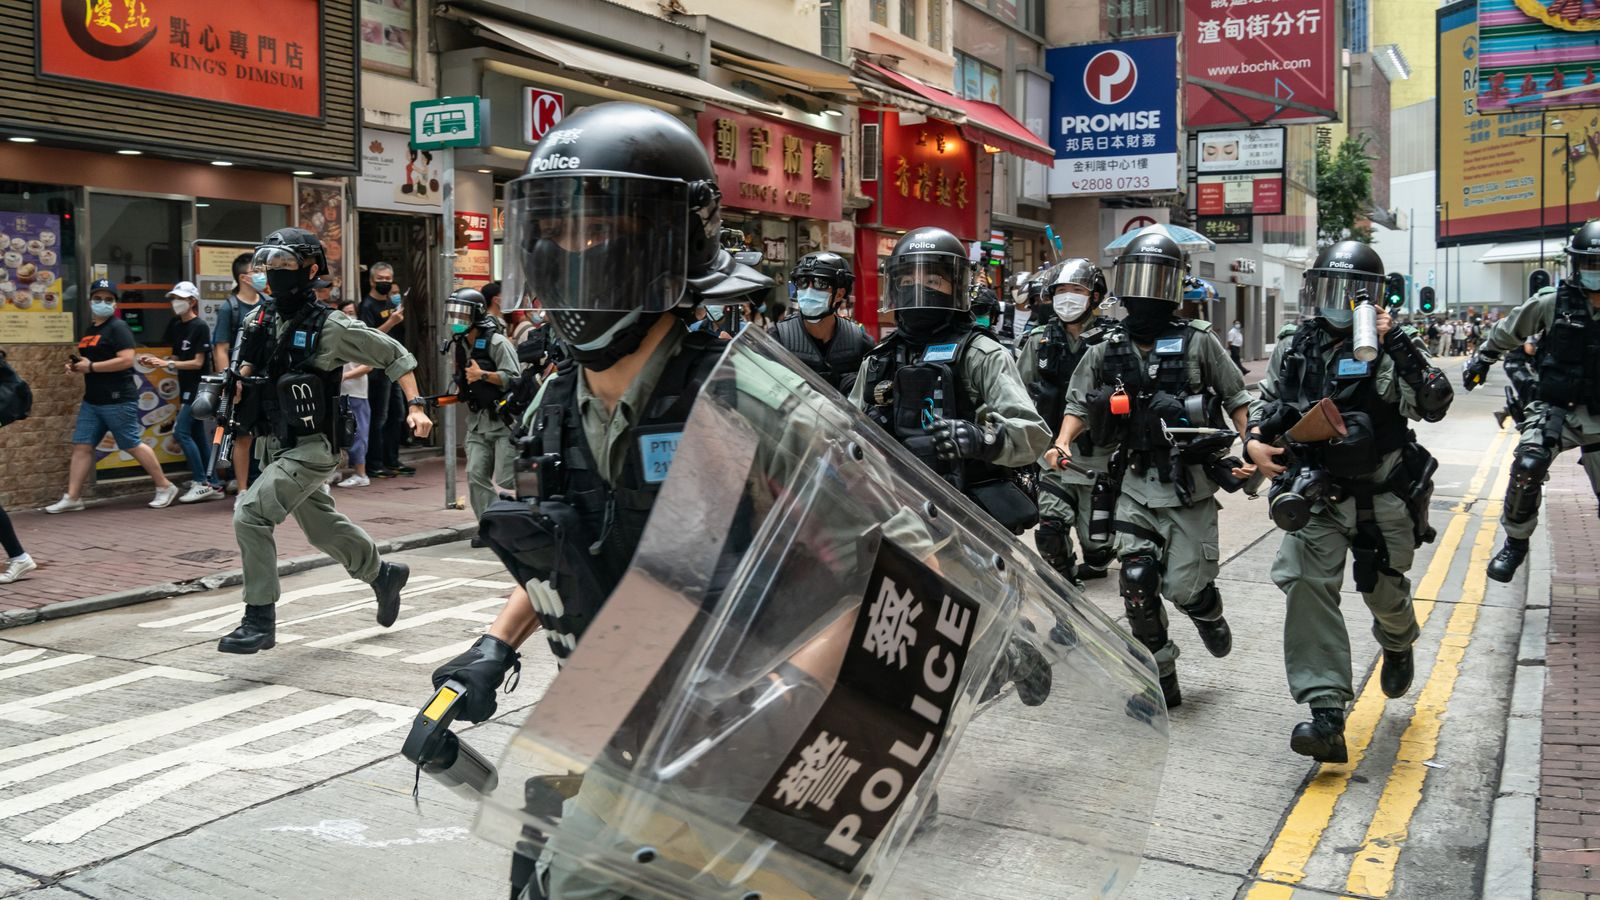 Police in Hong Kong make